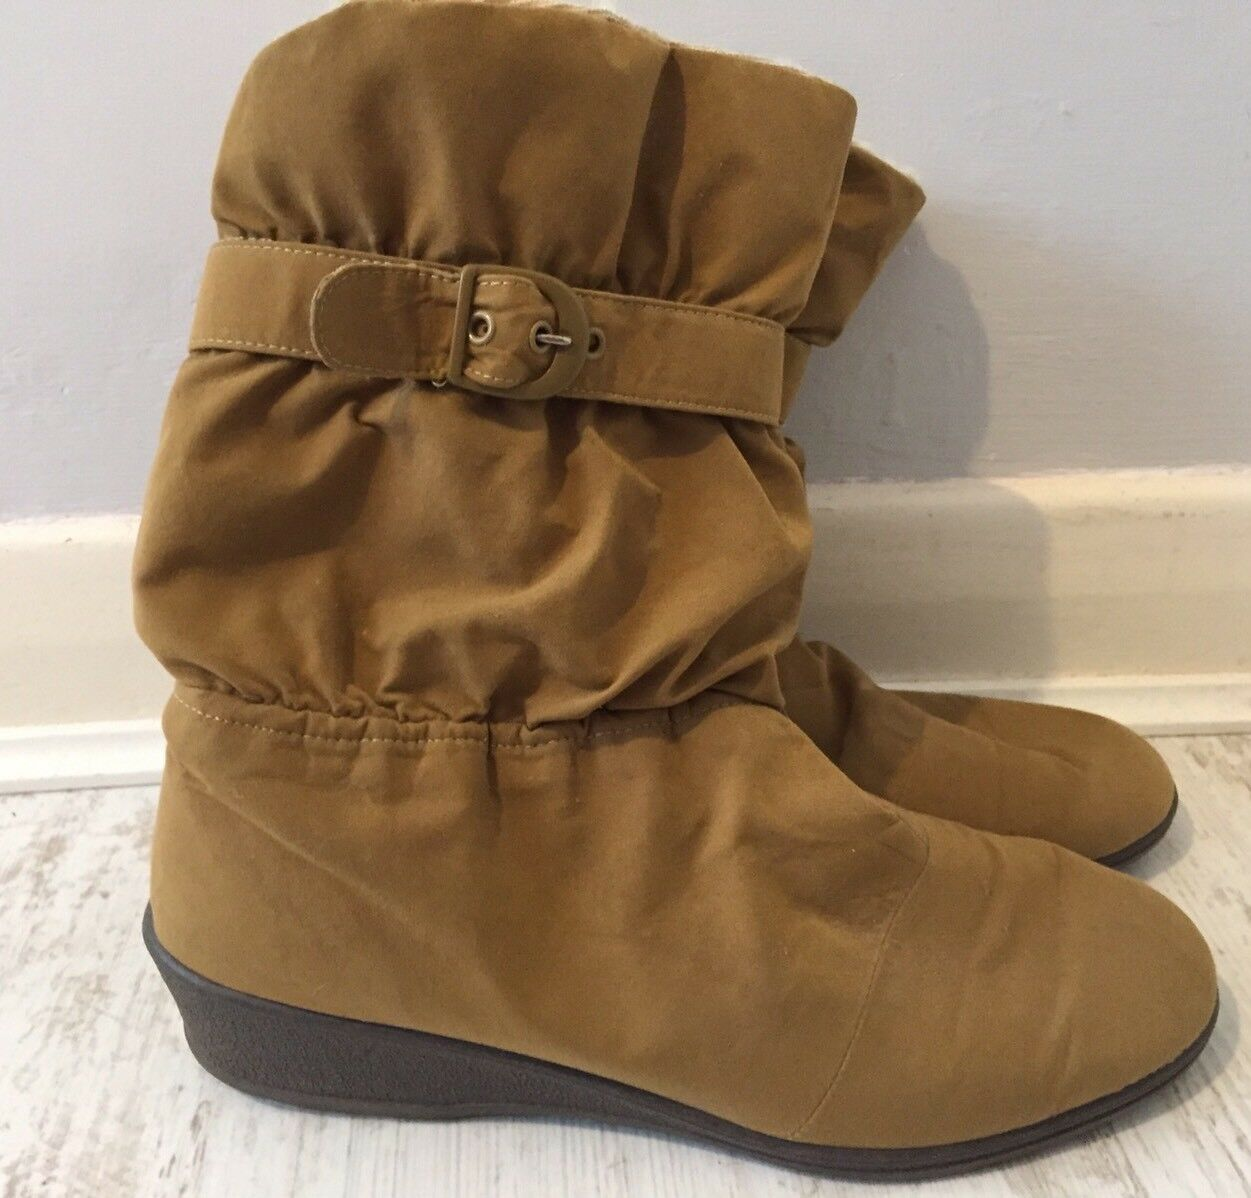 Rohde Sympatex Tan Wool Uk Lined Low Wedge Boots Size Uk Wool 7 5c4a42